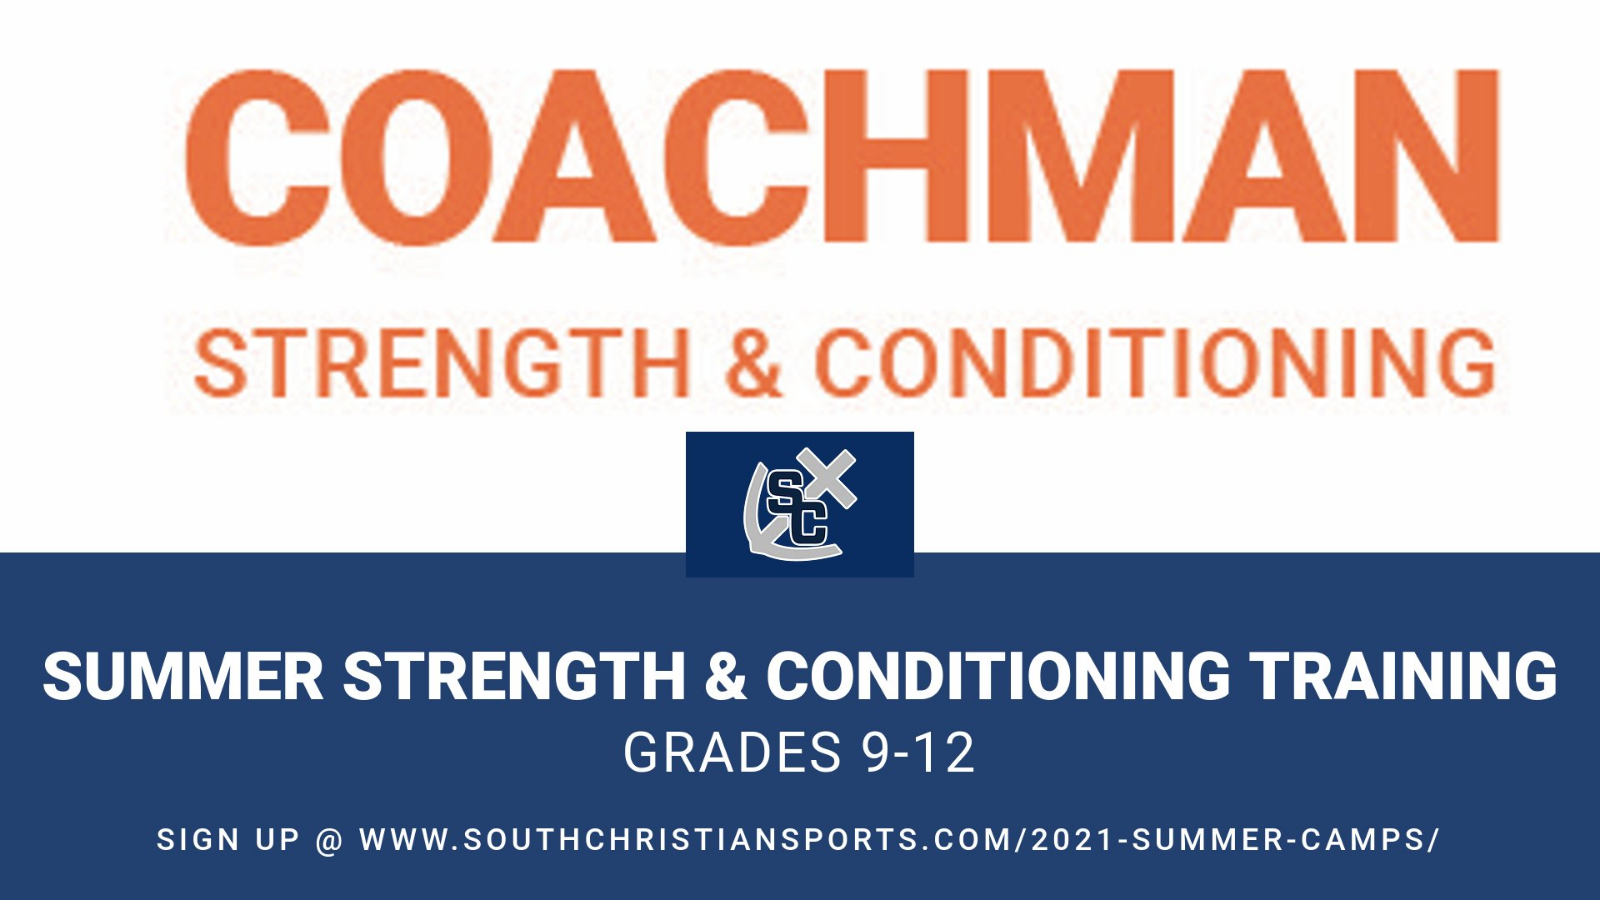 SUMMER 2021 COACHMAN STRENGTH & CONDITIONING TRAINING SIGN UP